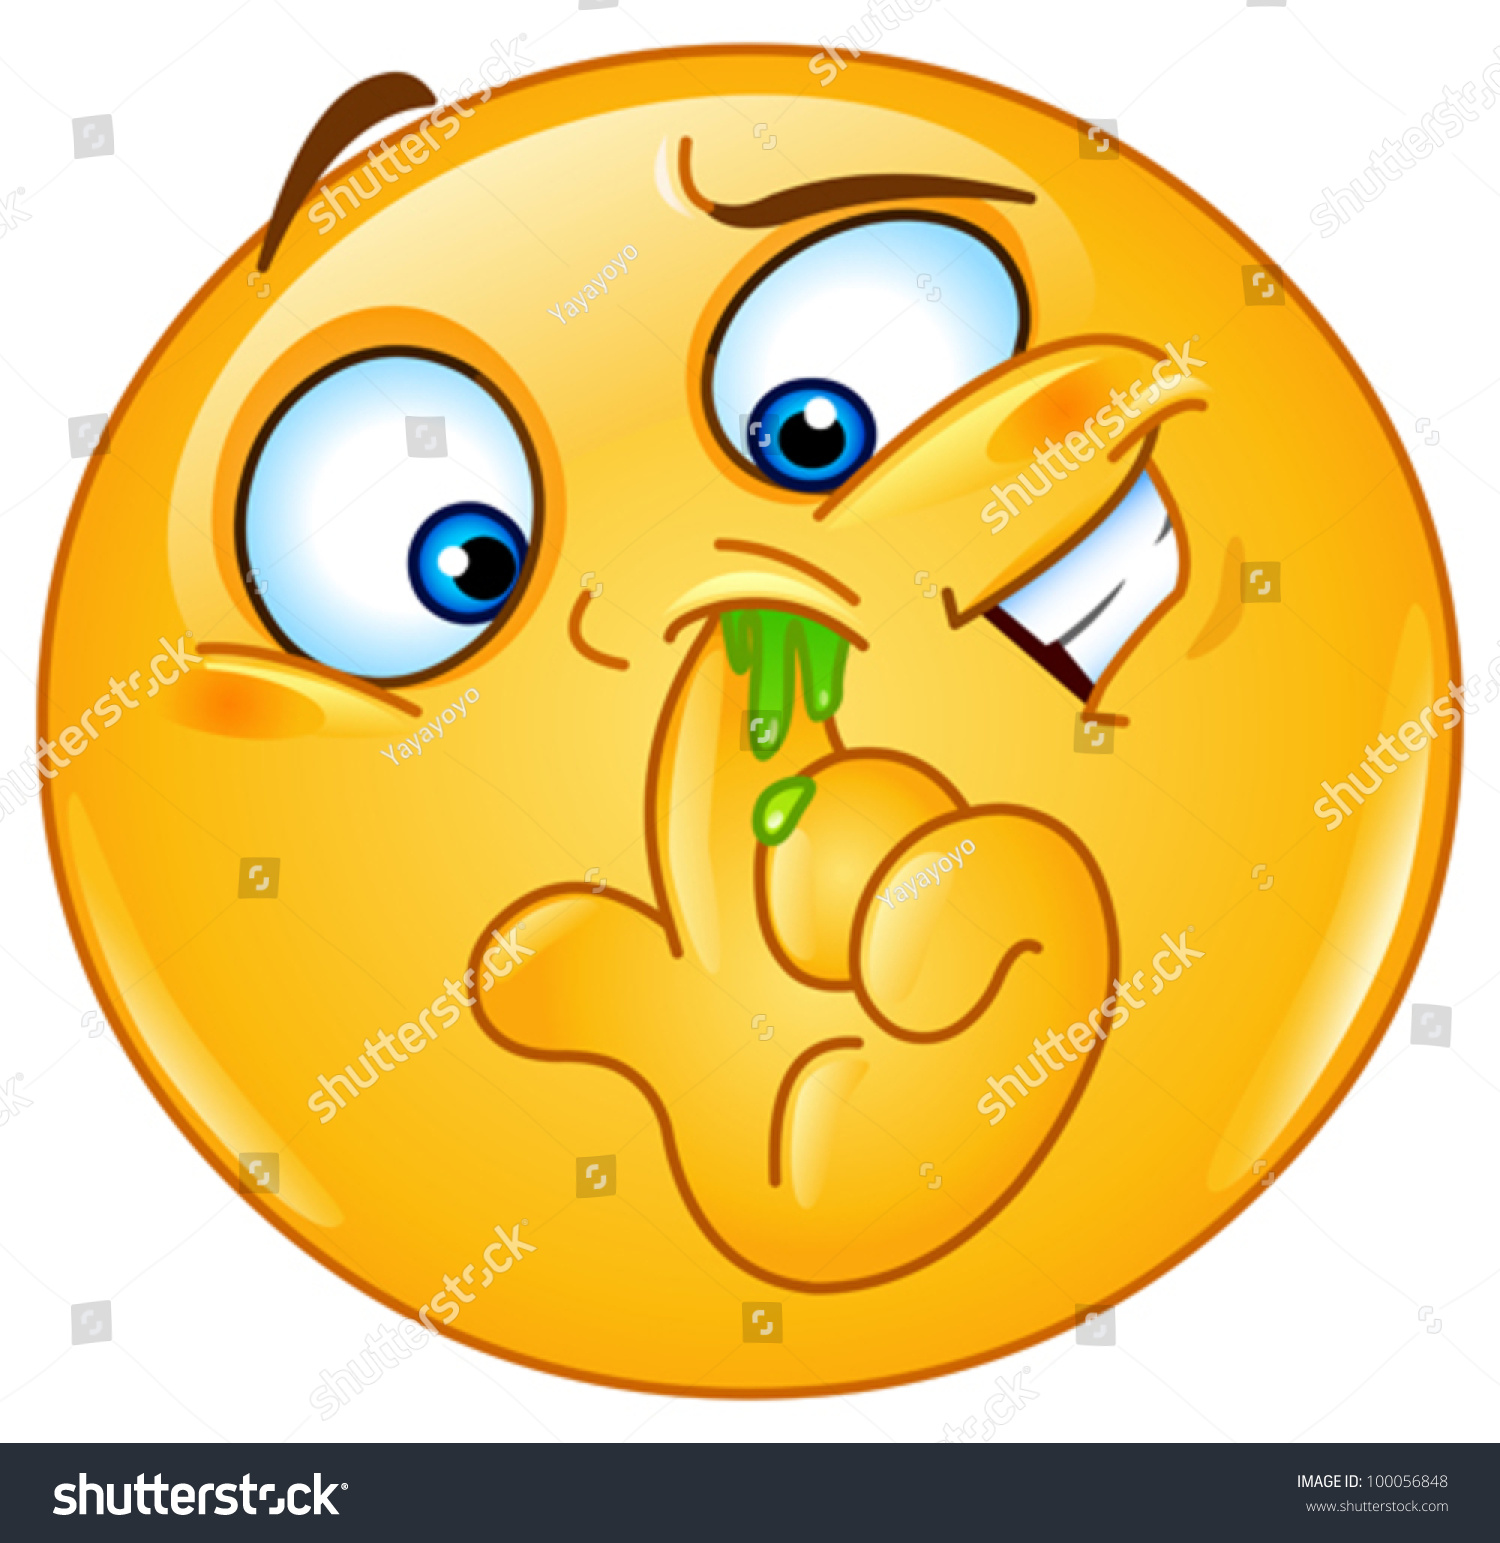 Disgusted Face Clip Art disgusted face stock vectors & vector clip art ...